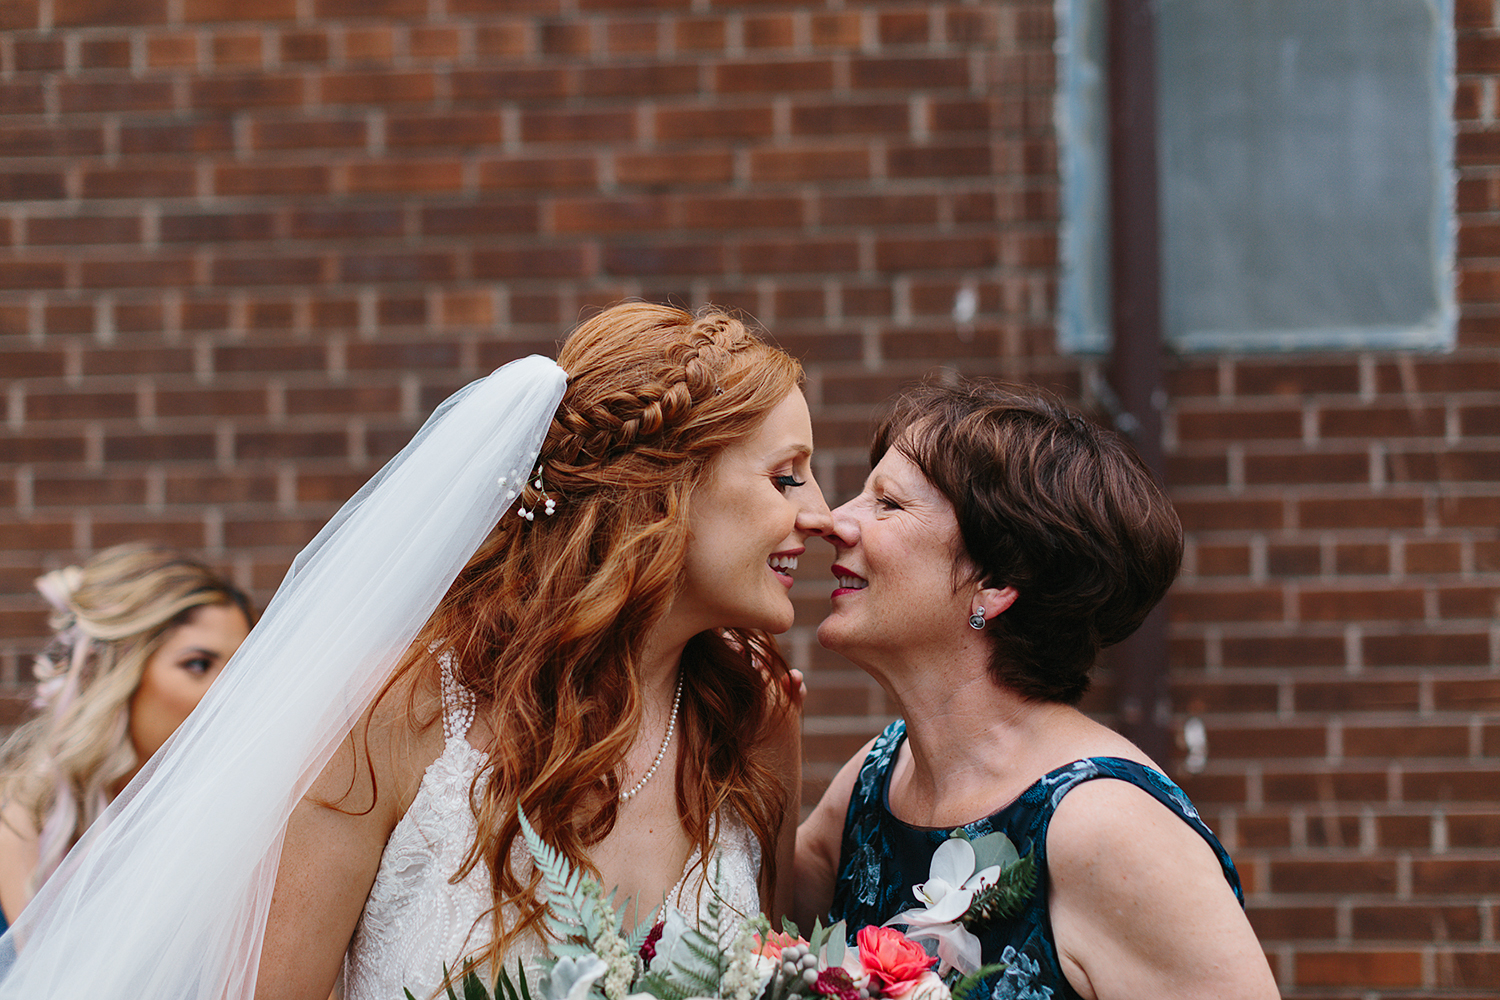 torontos-best-documentary-wedding-photographers-ryanne-hollies-photography-fine-art-photojournalism-artistic-moody-creative-inspiration-downtown-toronto-airship37-venue-modern-hipster-cocktail-hour-bride-and-mom-having-a-moment-cute.jpg